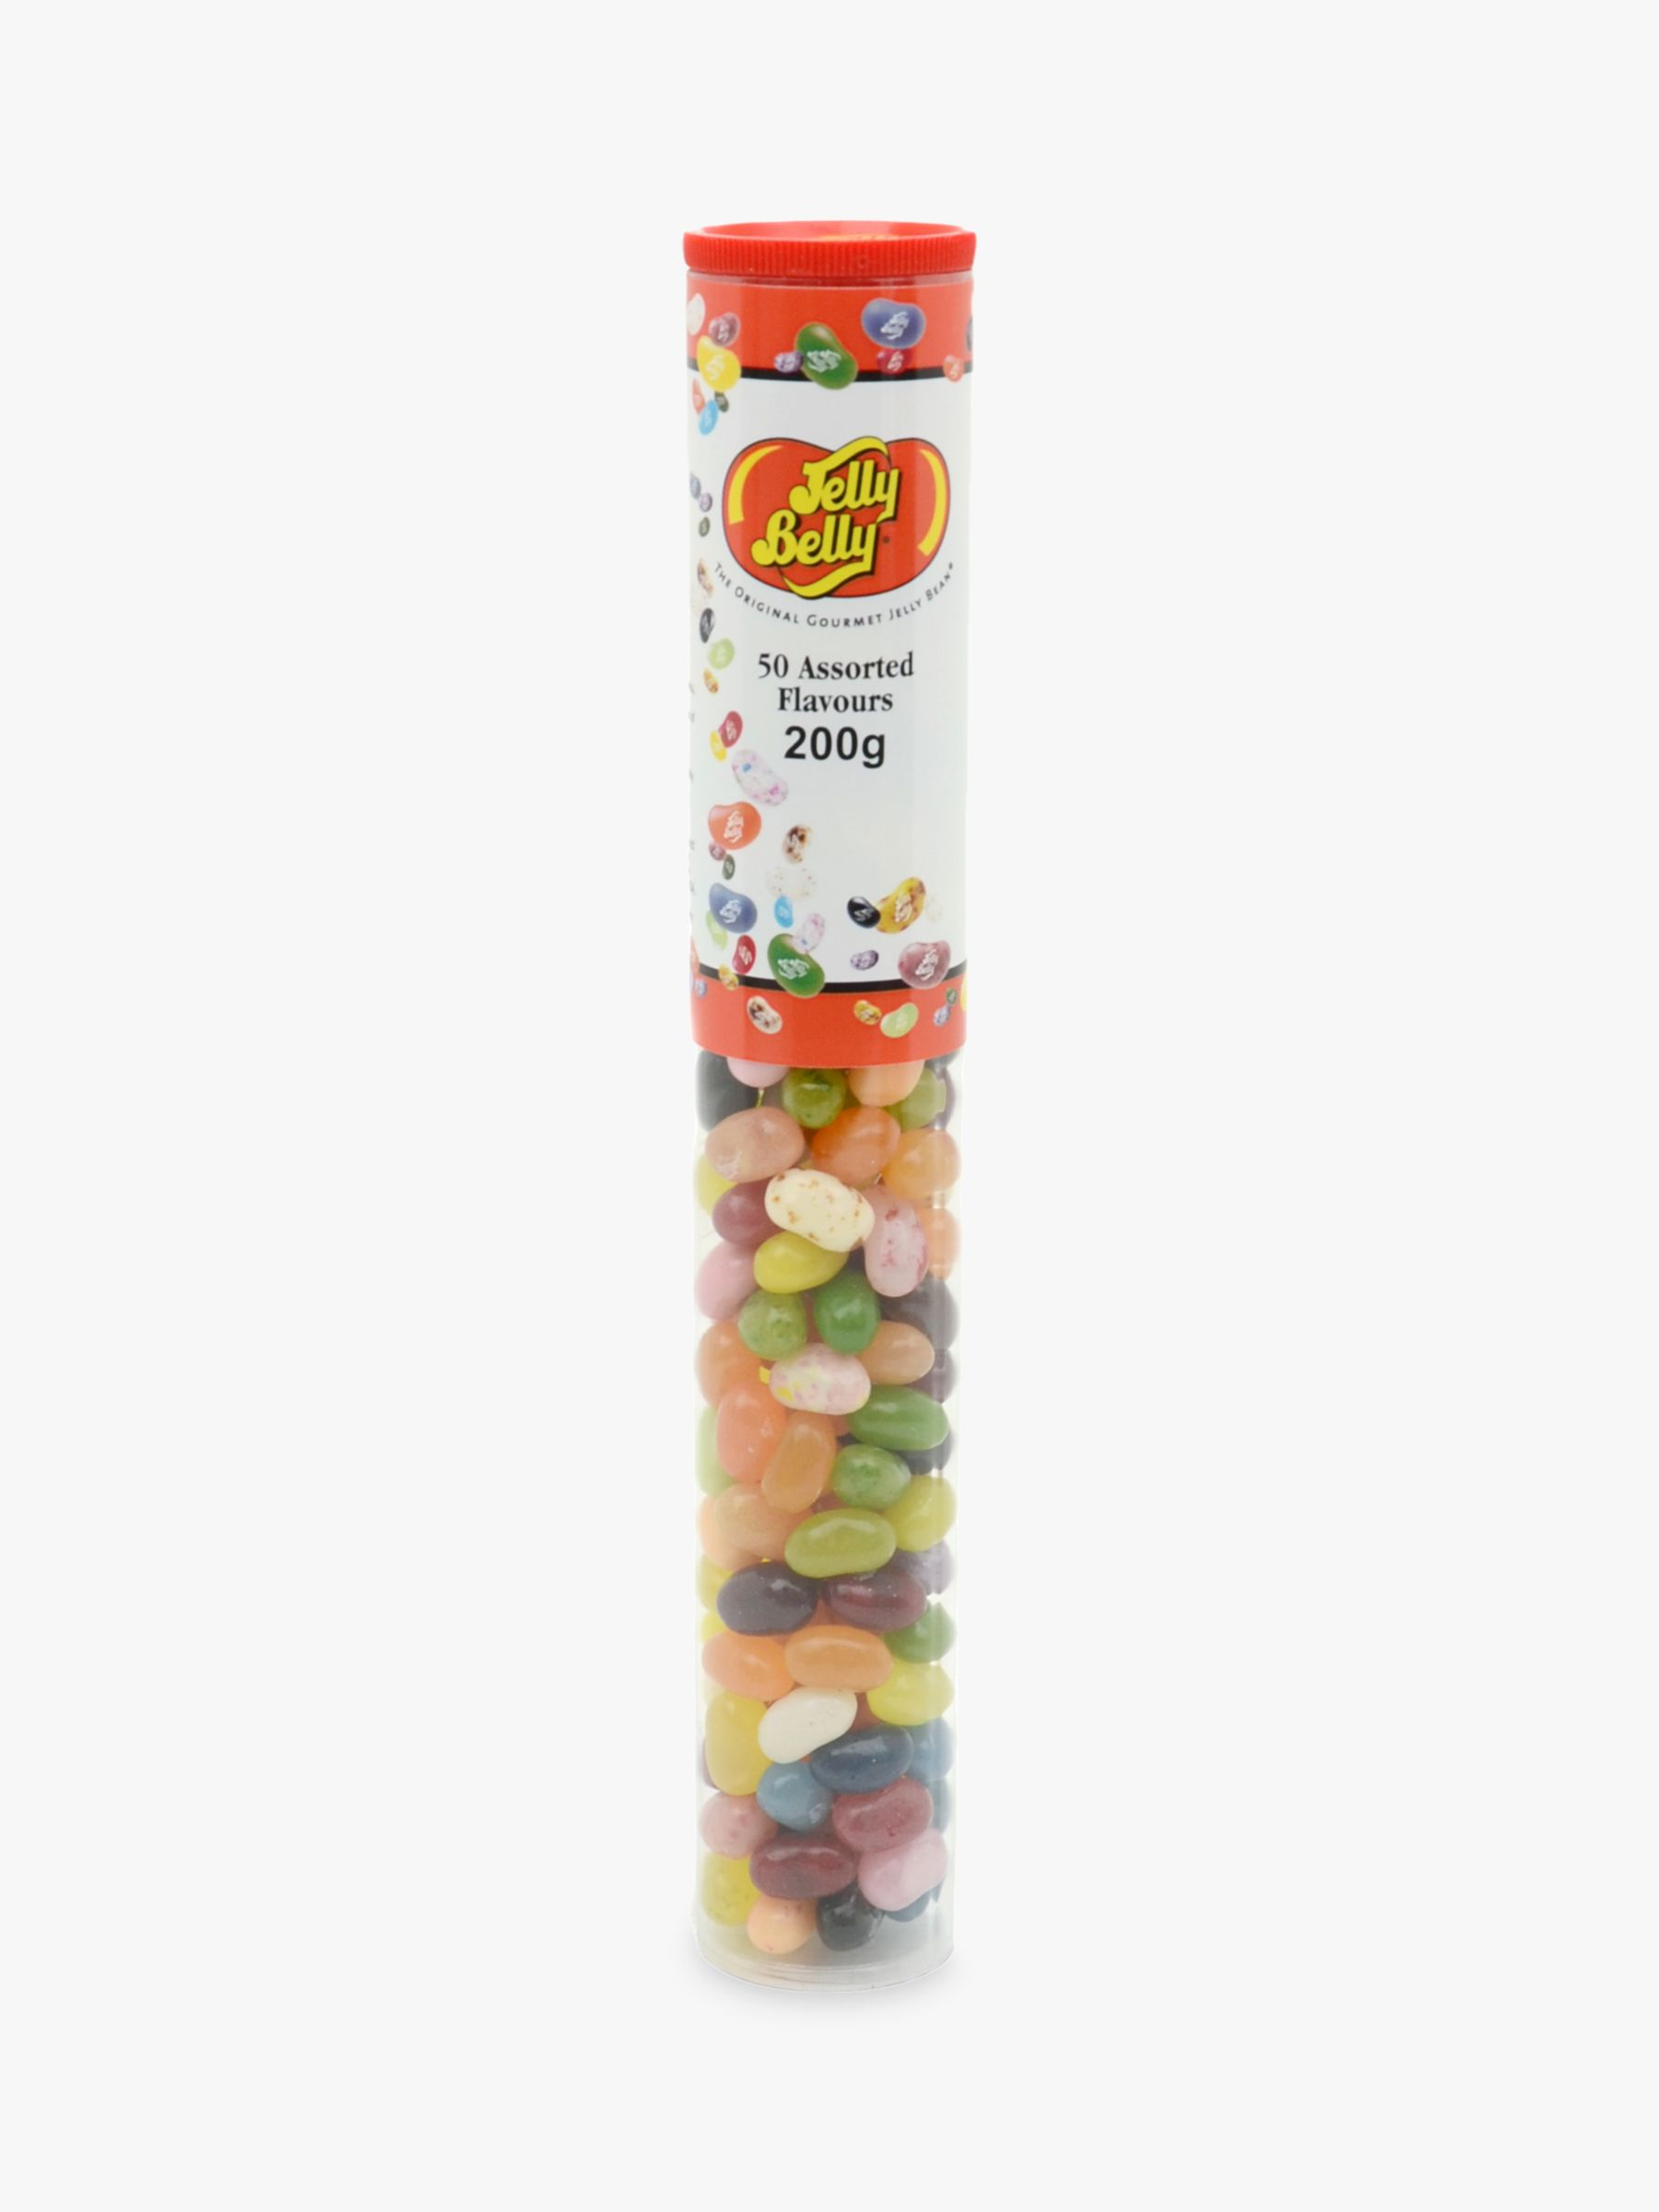 Jelly Belly Jelly Belly 50 Assorted Flavours, 200g